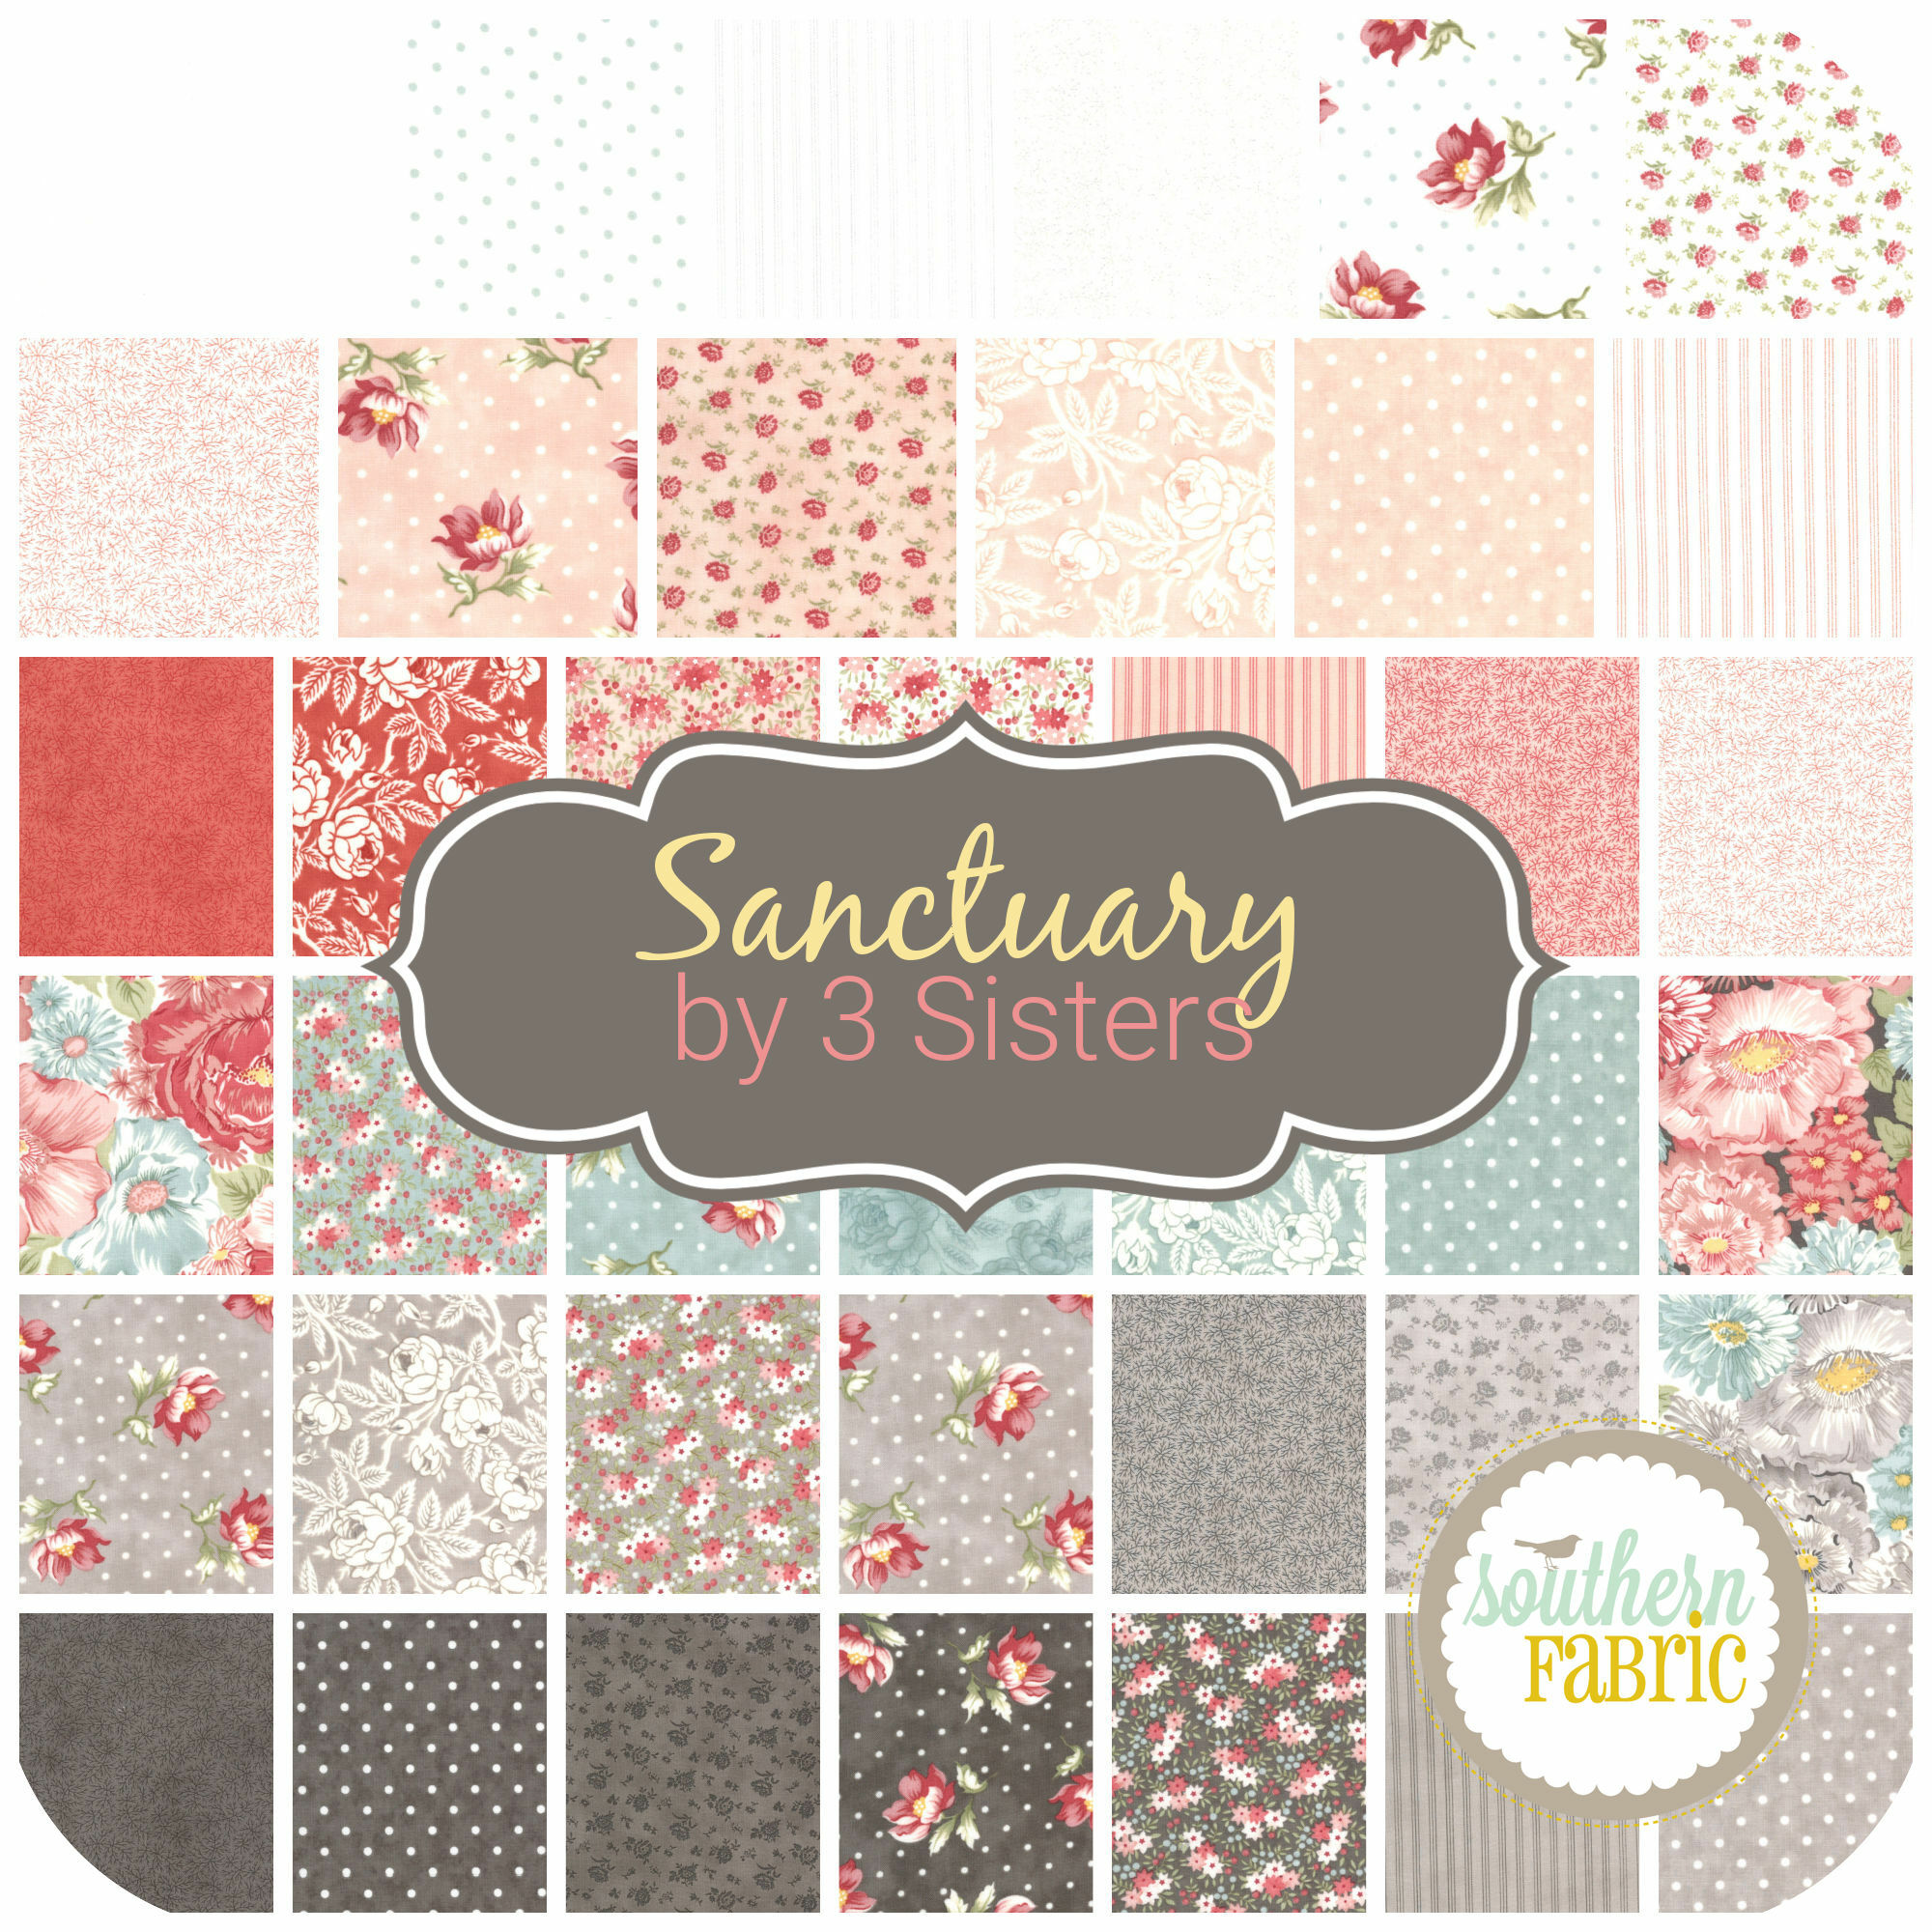 Sanctuary by 3 Sisters